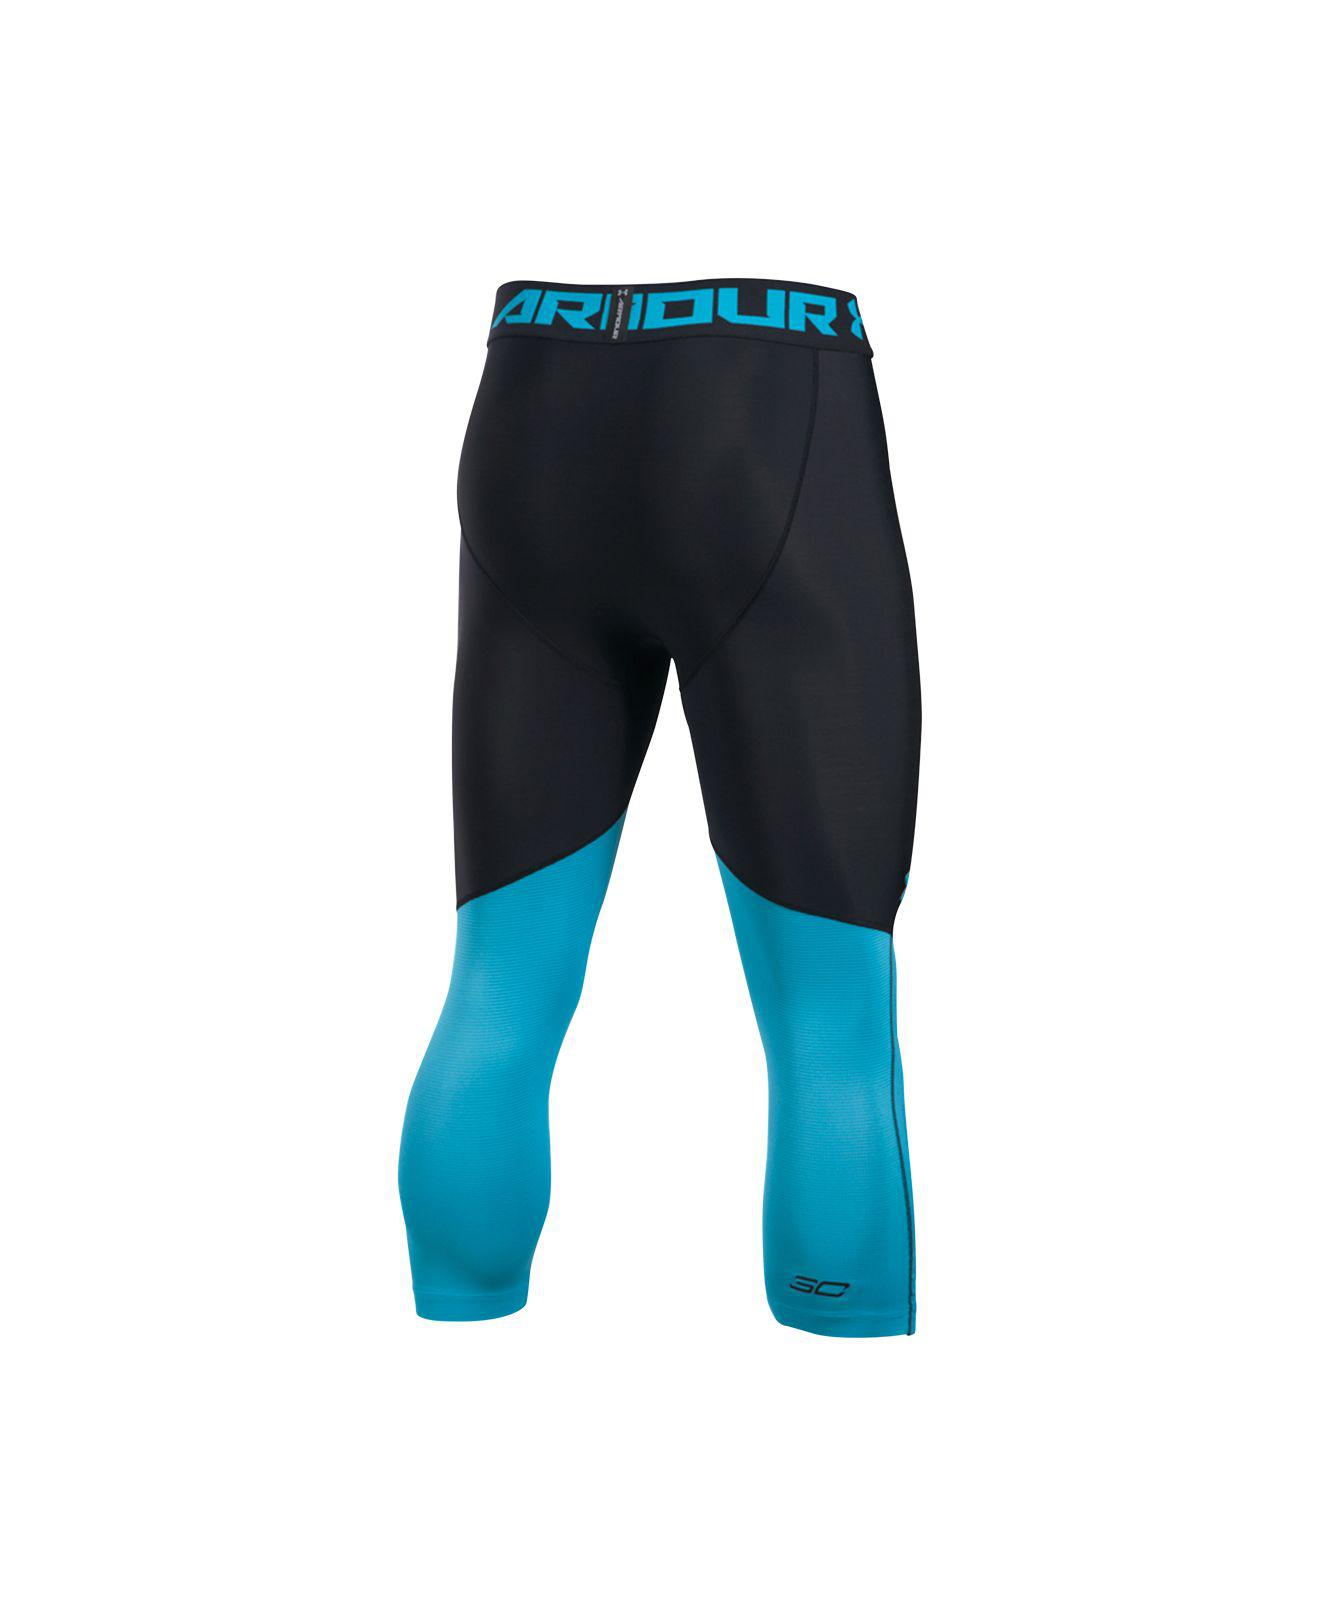 4b0be976e0 Under Armour Blue Men's Heatgear® Colorblocked Steph Curry Cropped  Compression Leggings for men